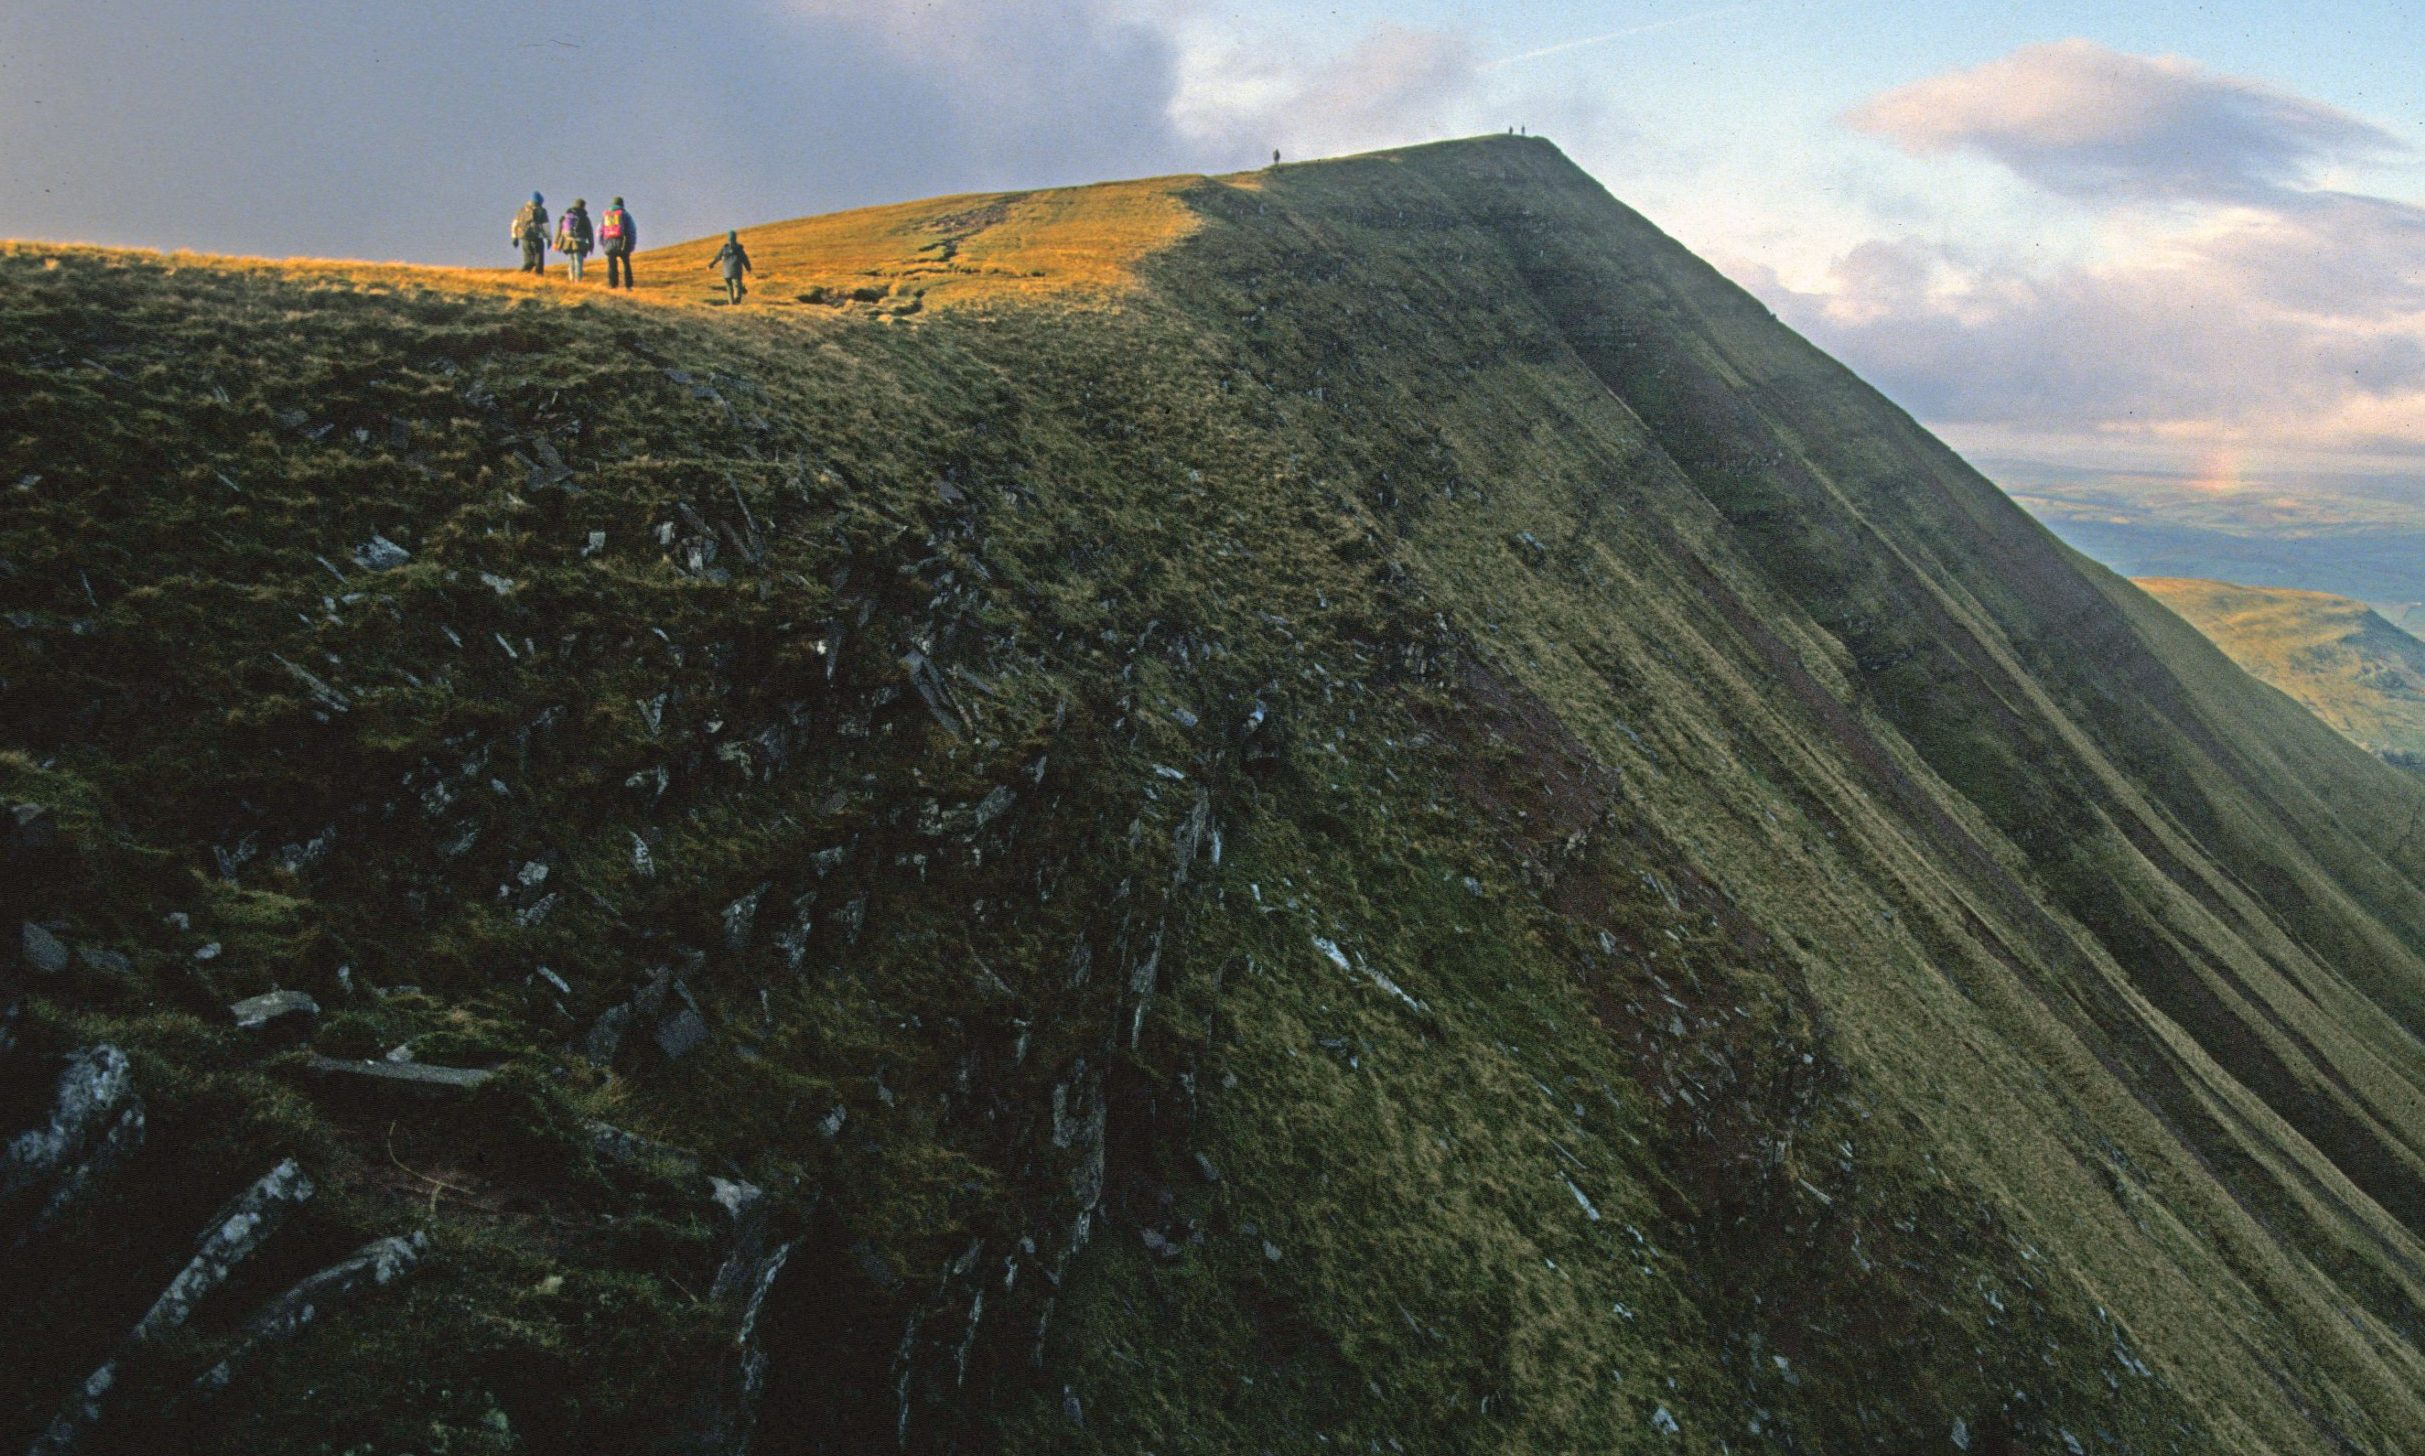 BNPS.co.uk (01202 558833)?Pic: MyrddynPhillips/BNPS Looking from the coll to the summit of Fan y Big. Technical KO - Welsh 'mountain' to loses its status after rechecking its vital statistics. Wales has lost a mountain after one of its peaks was reclassified on a 'technicality'. Impressive Fan y Big, in the Brecon Beacons, has been downgraded after an eagle eyed mountain surveyor measured it and found it didn't meet the stringent criteria. Mountains are required to be at least 2,000ft high (609.6m) and in the case of Fan y Big have a minimum drop between the summit and col of 30m (98ft 5in). Fan y Big has no problem conforming to the first category with its accurately surveyed height of 2,351ft (716.7m) But its drop has now been measured at 93ft 6in (28.5m), 4ft 11in (1.5m) less than what is required to maintain its mountain status.